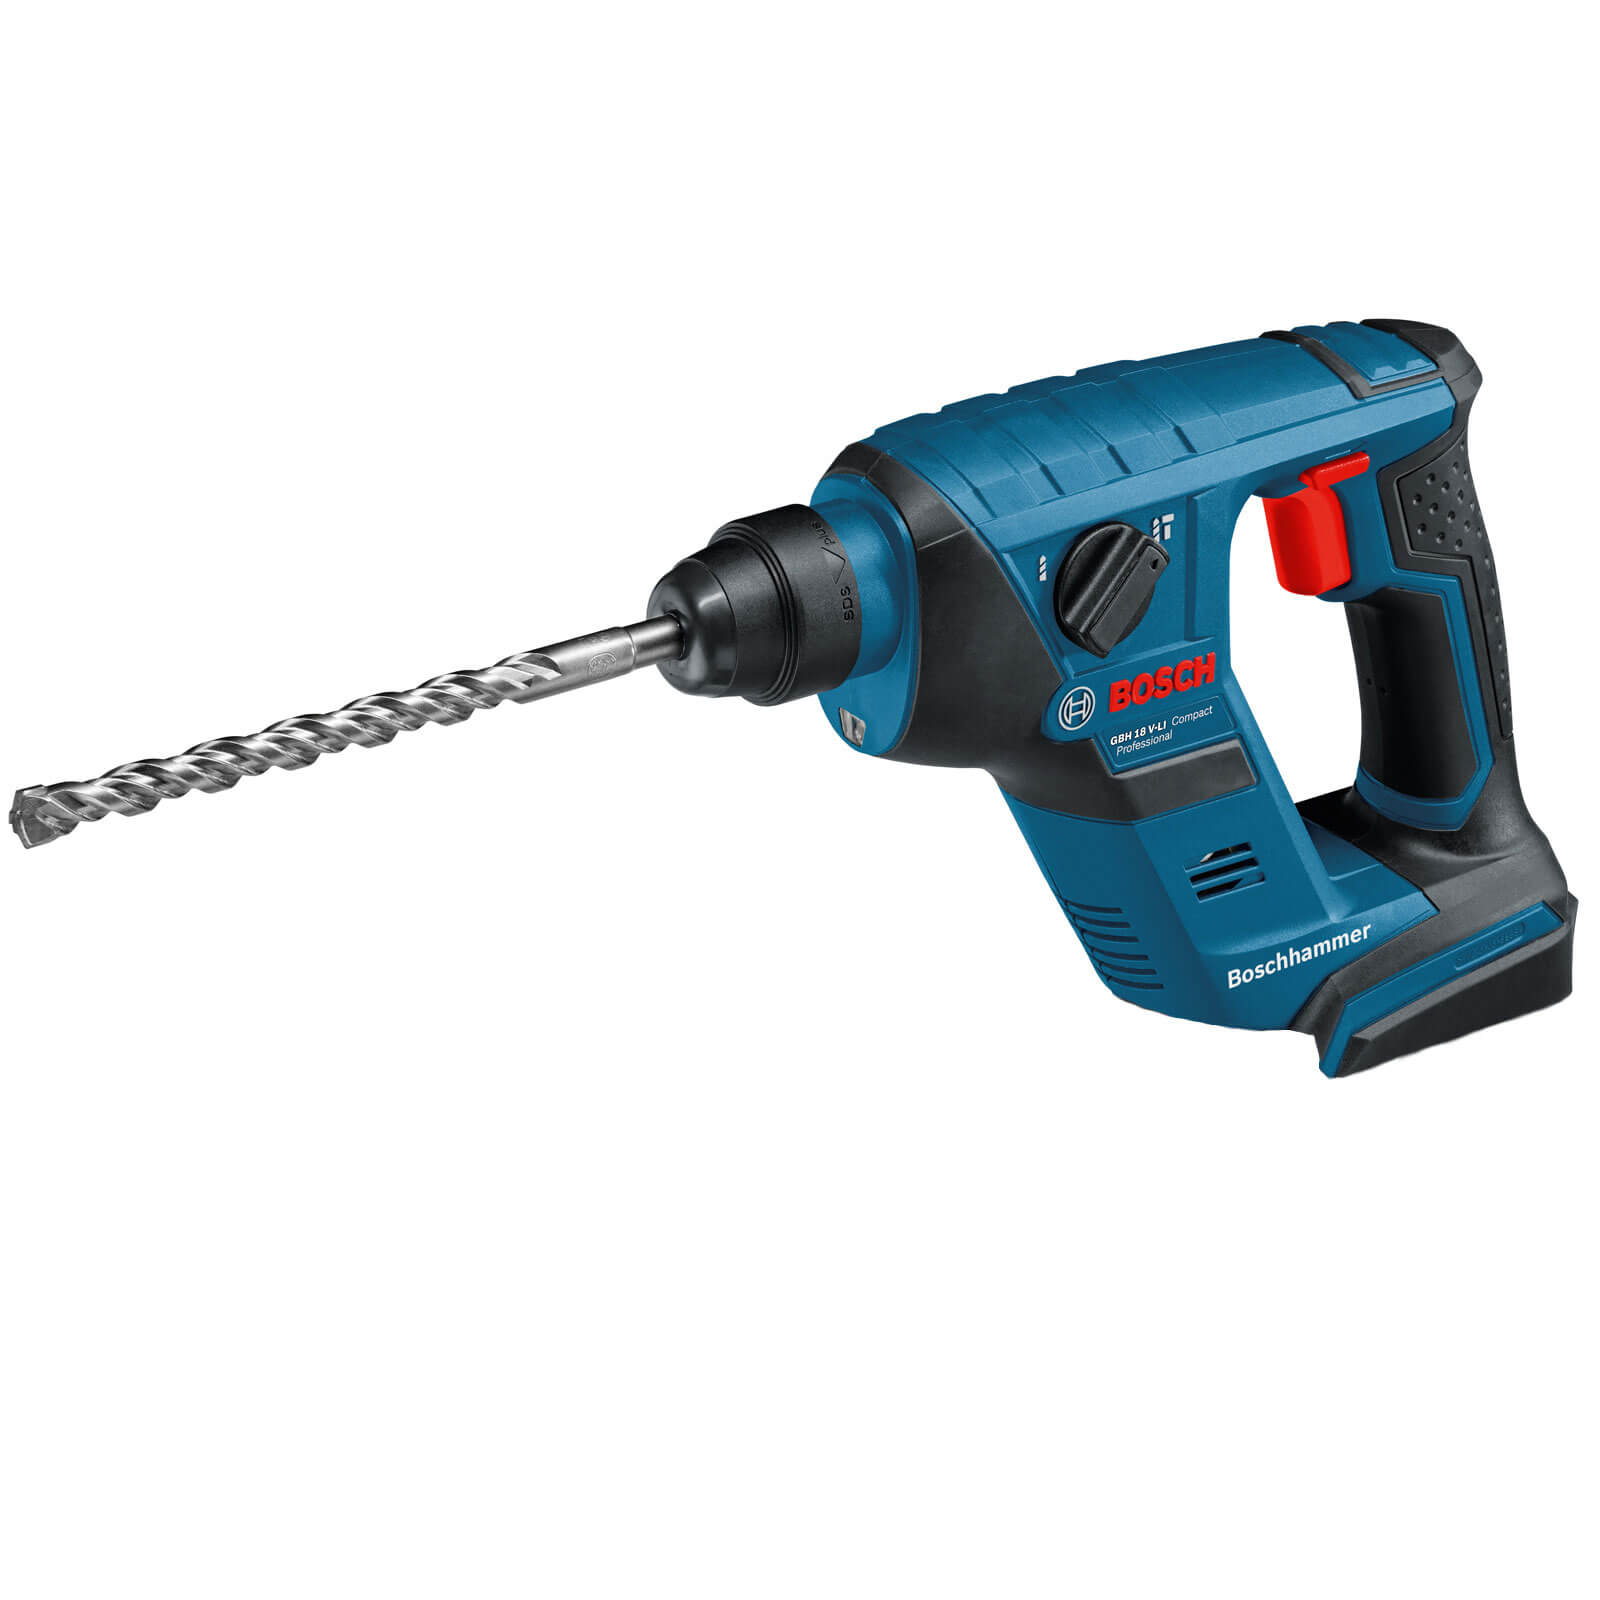 Bosch GBH 18VLI 18v Cordless Compact SDS Plus Hammer Drill without Battery or Charger